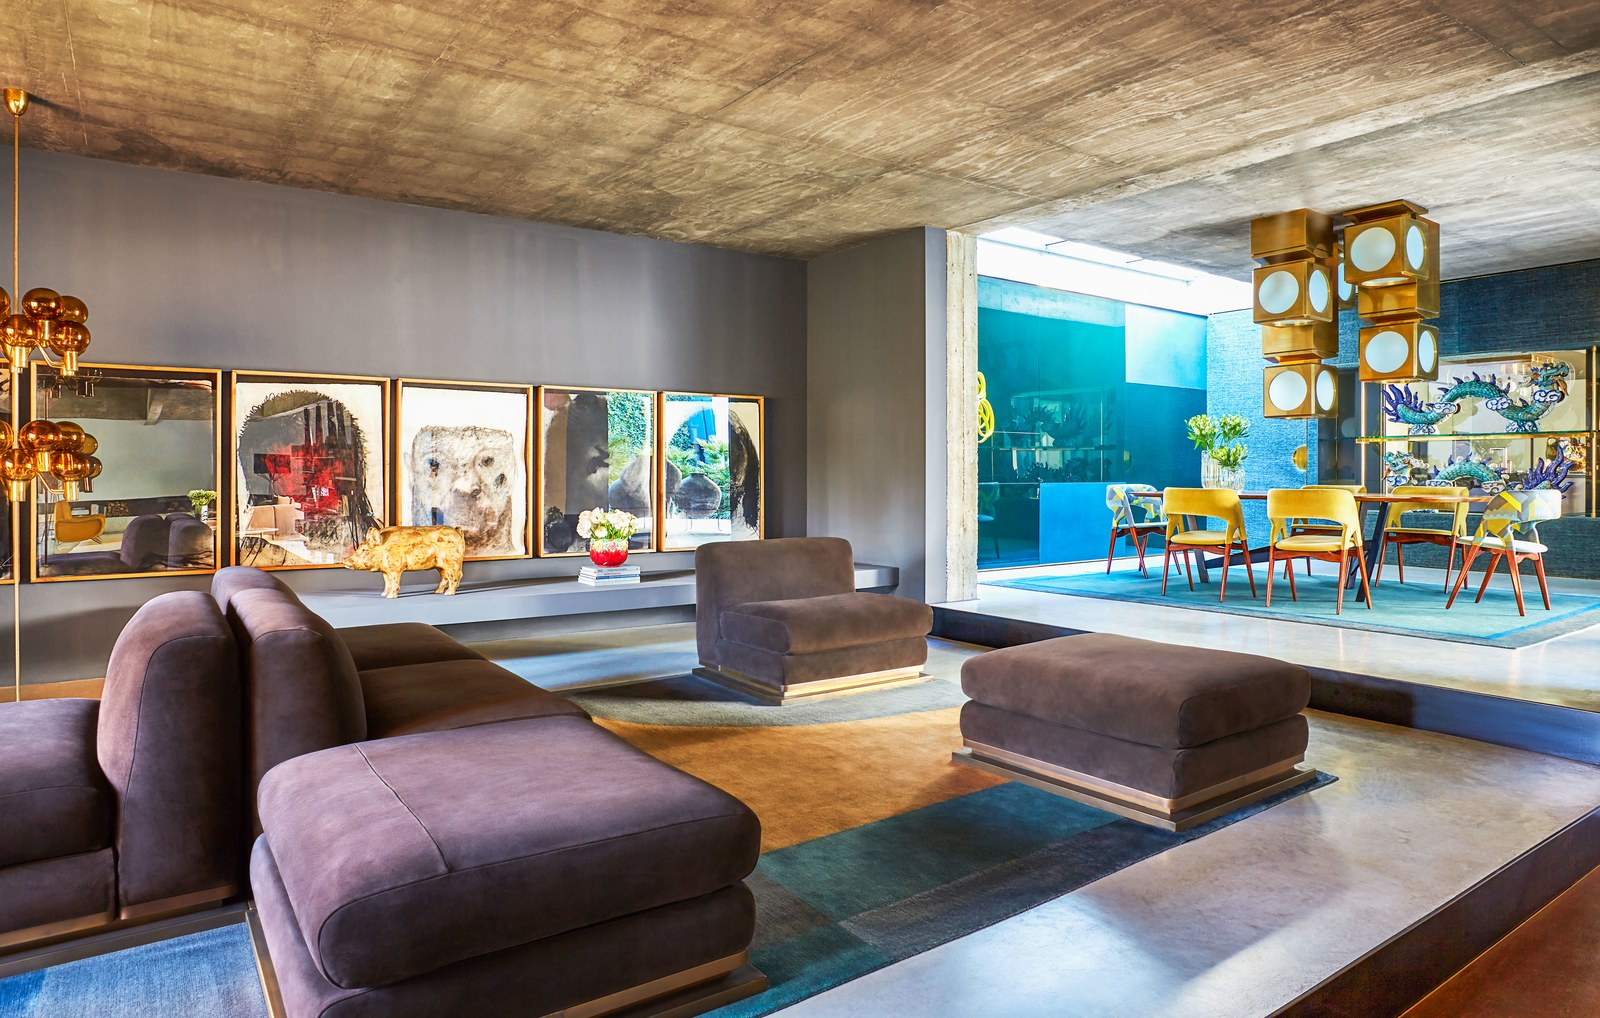 Boca do Lobo's Curated Selection Of The Best Italian Interior Designers italian interior designer Boca do Lobo's Curated Selection Of The Best Italian Interior Designers AD0220 DE COTIIS 8